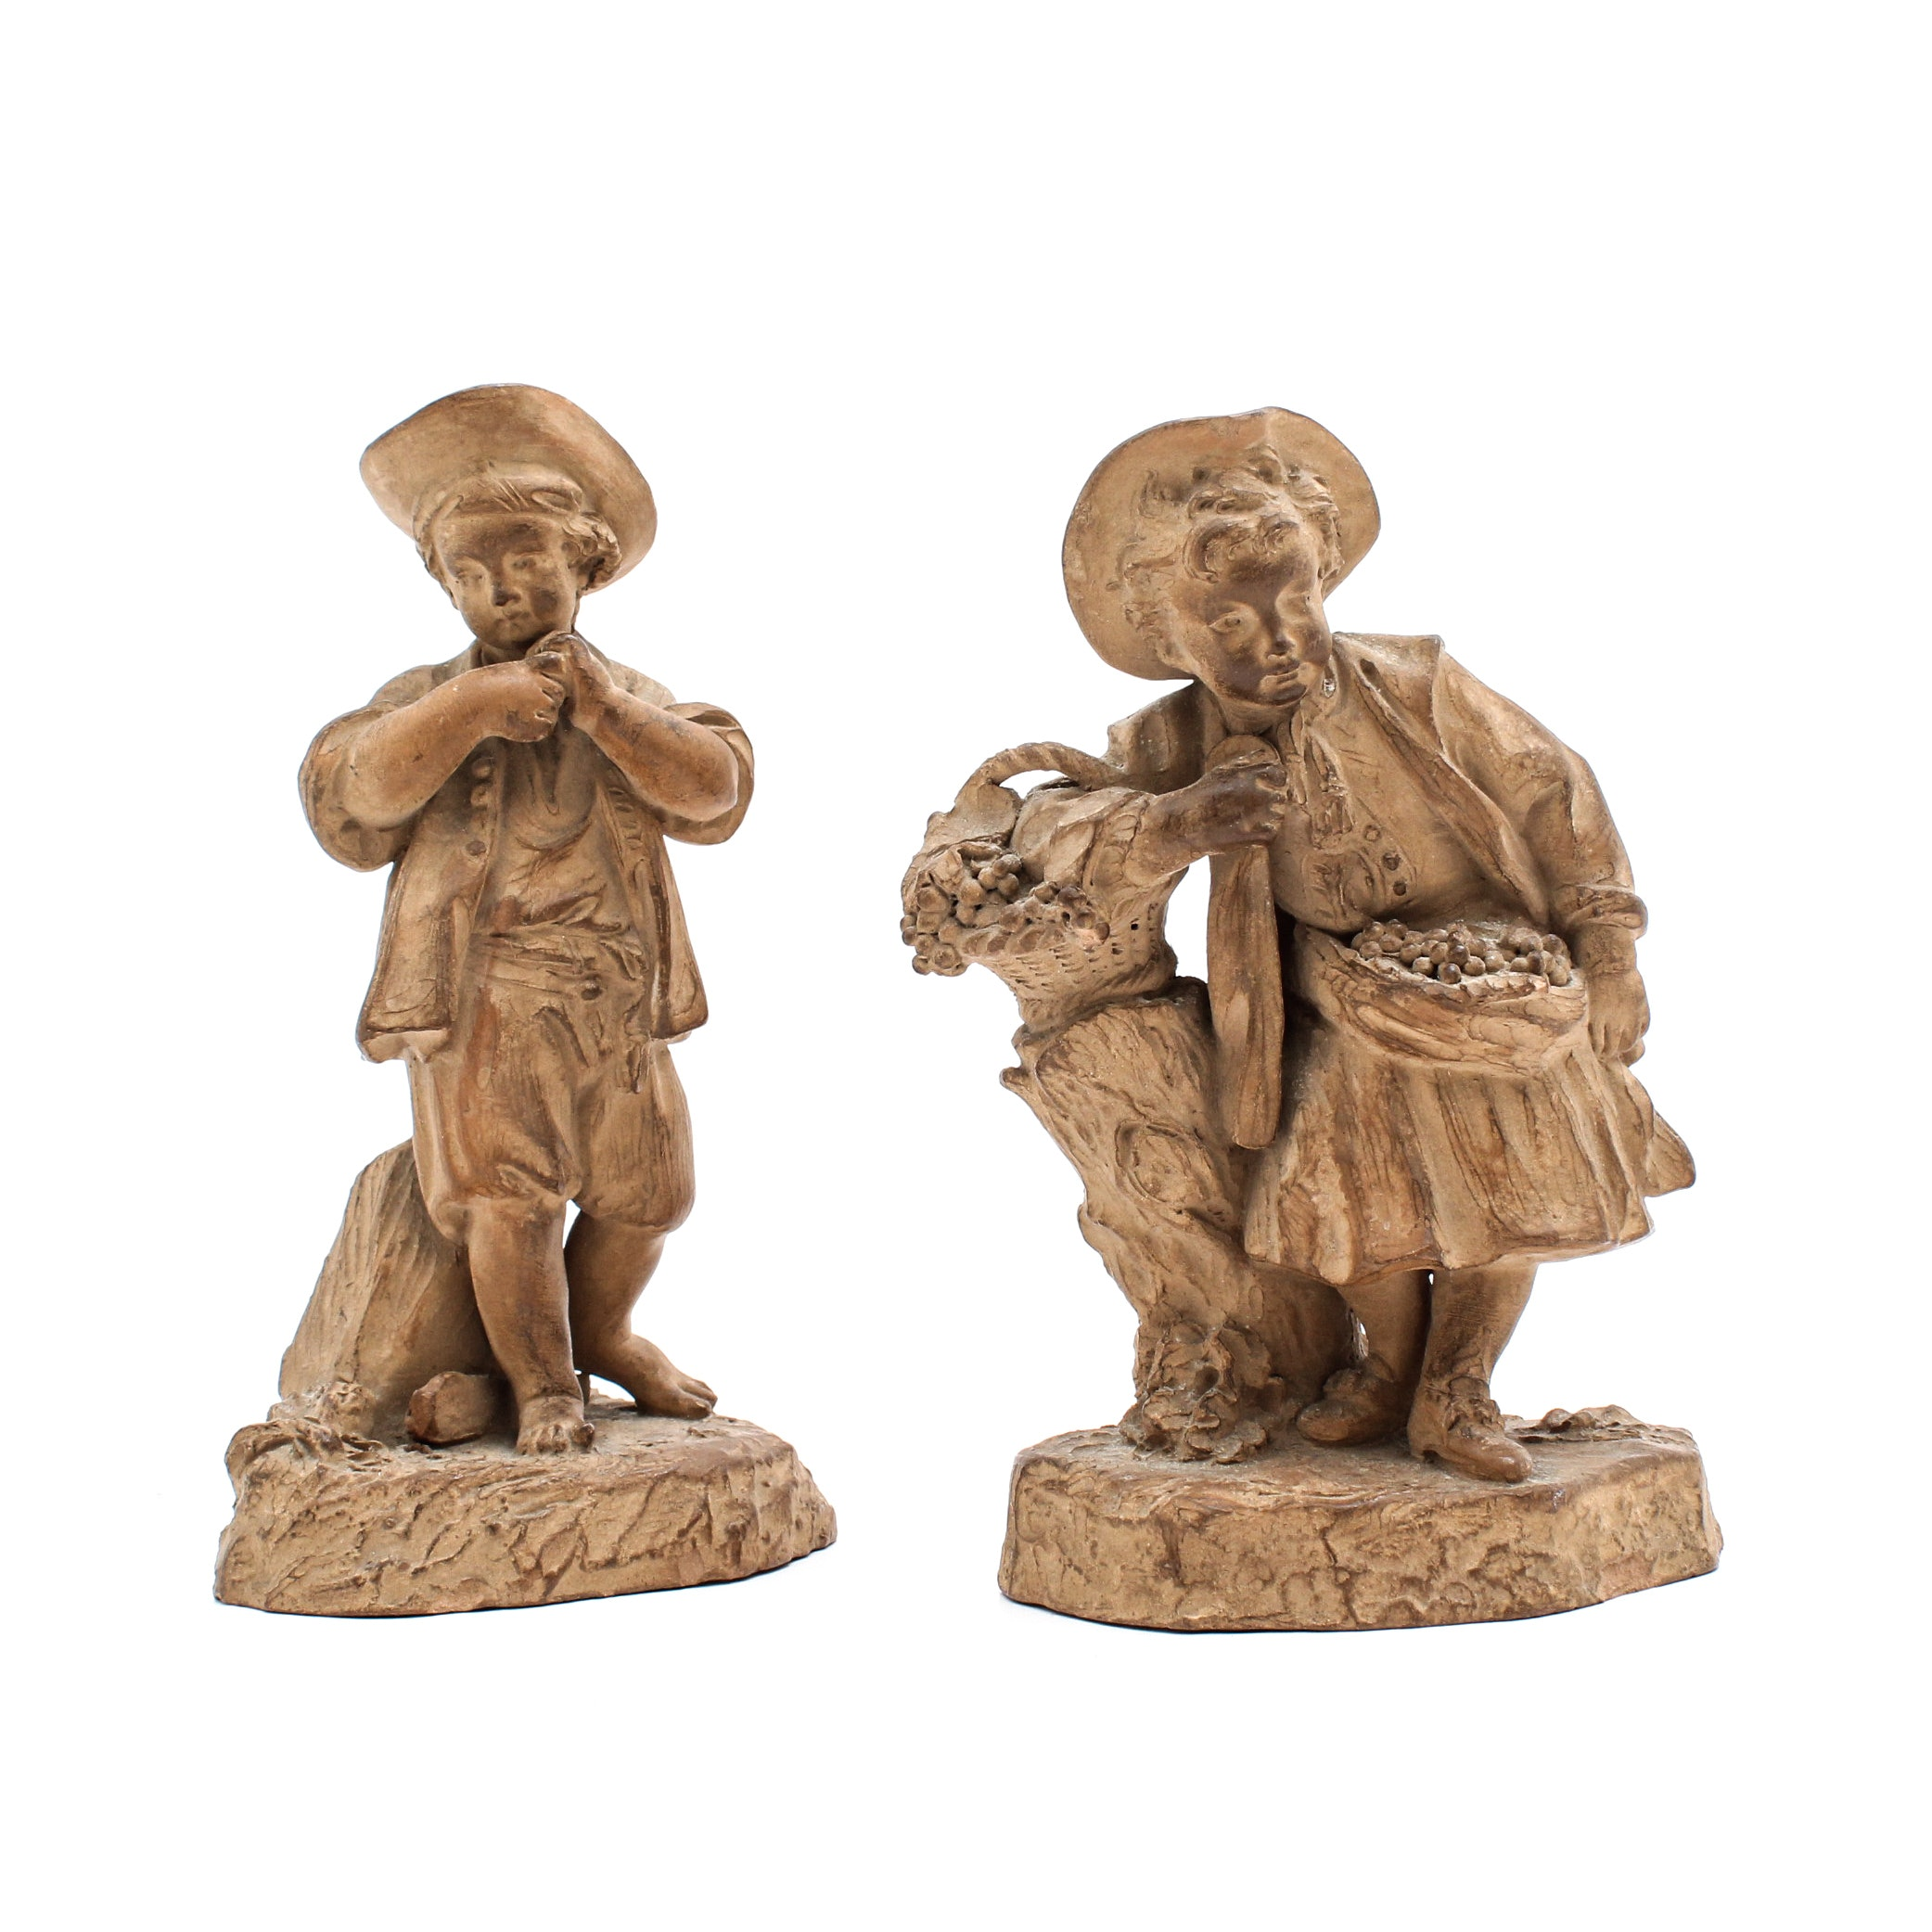 French Terra Cotta Pottery Figurines